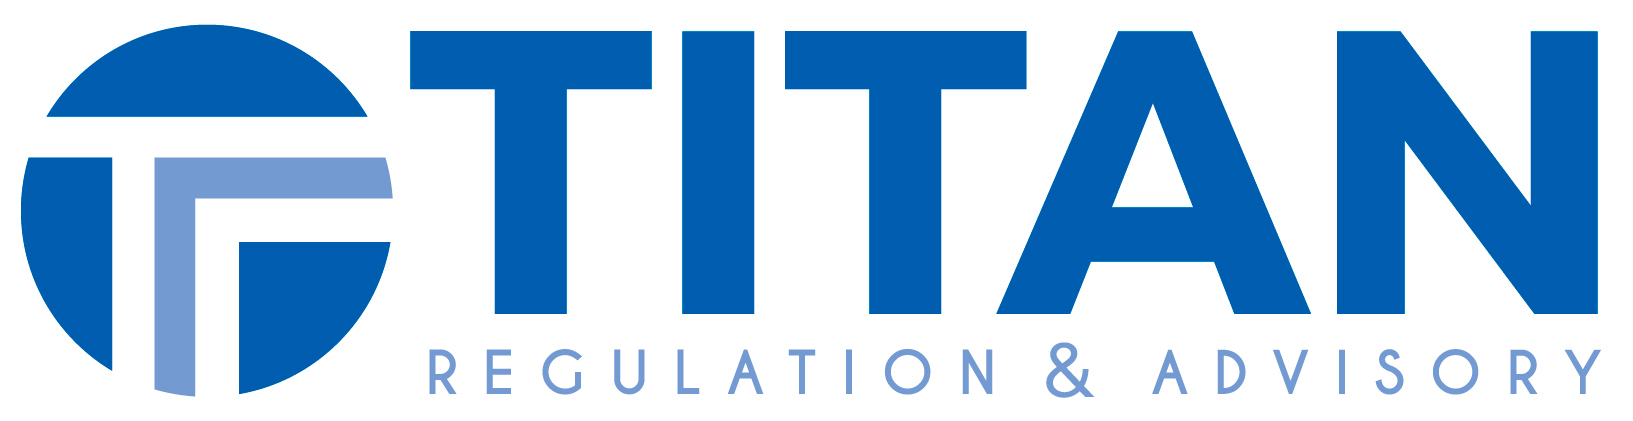 Titan Regulation adds Advisory business, Rebrands as Titan